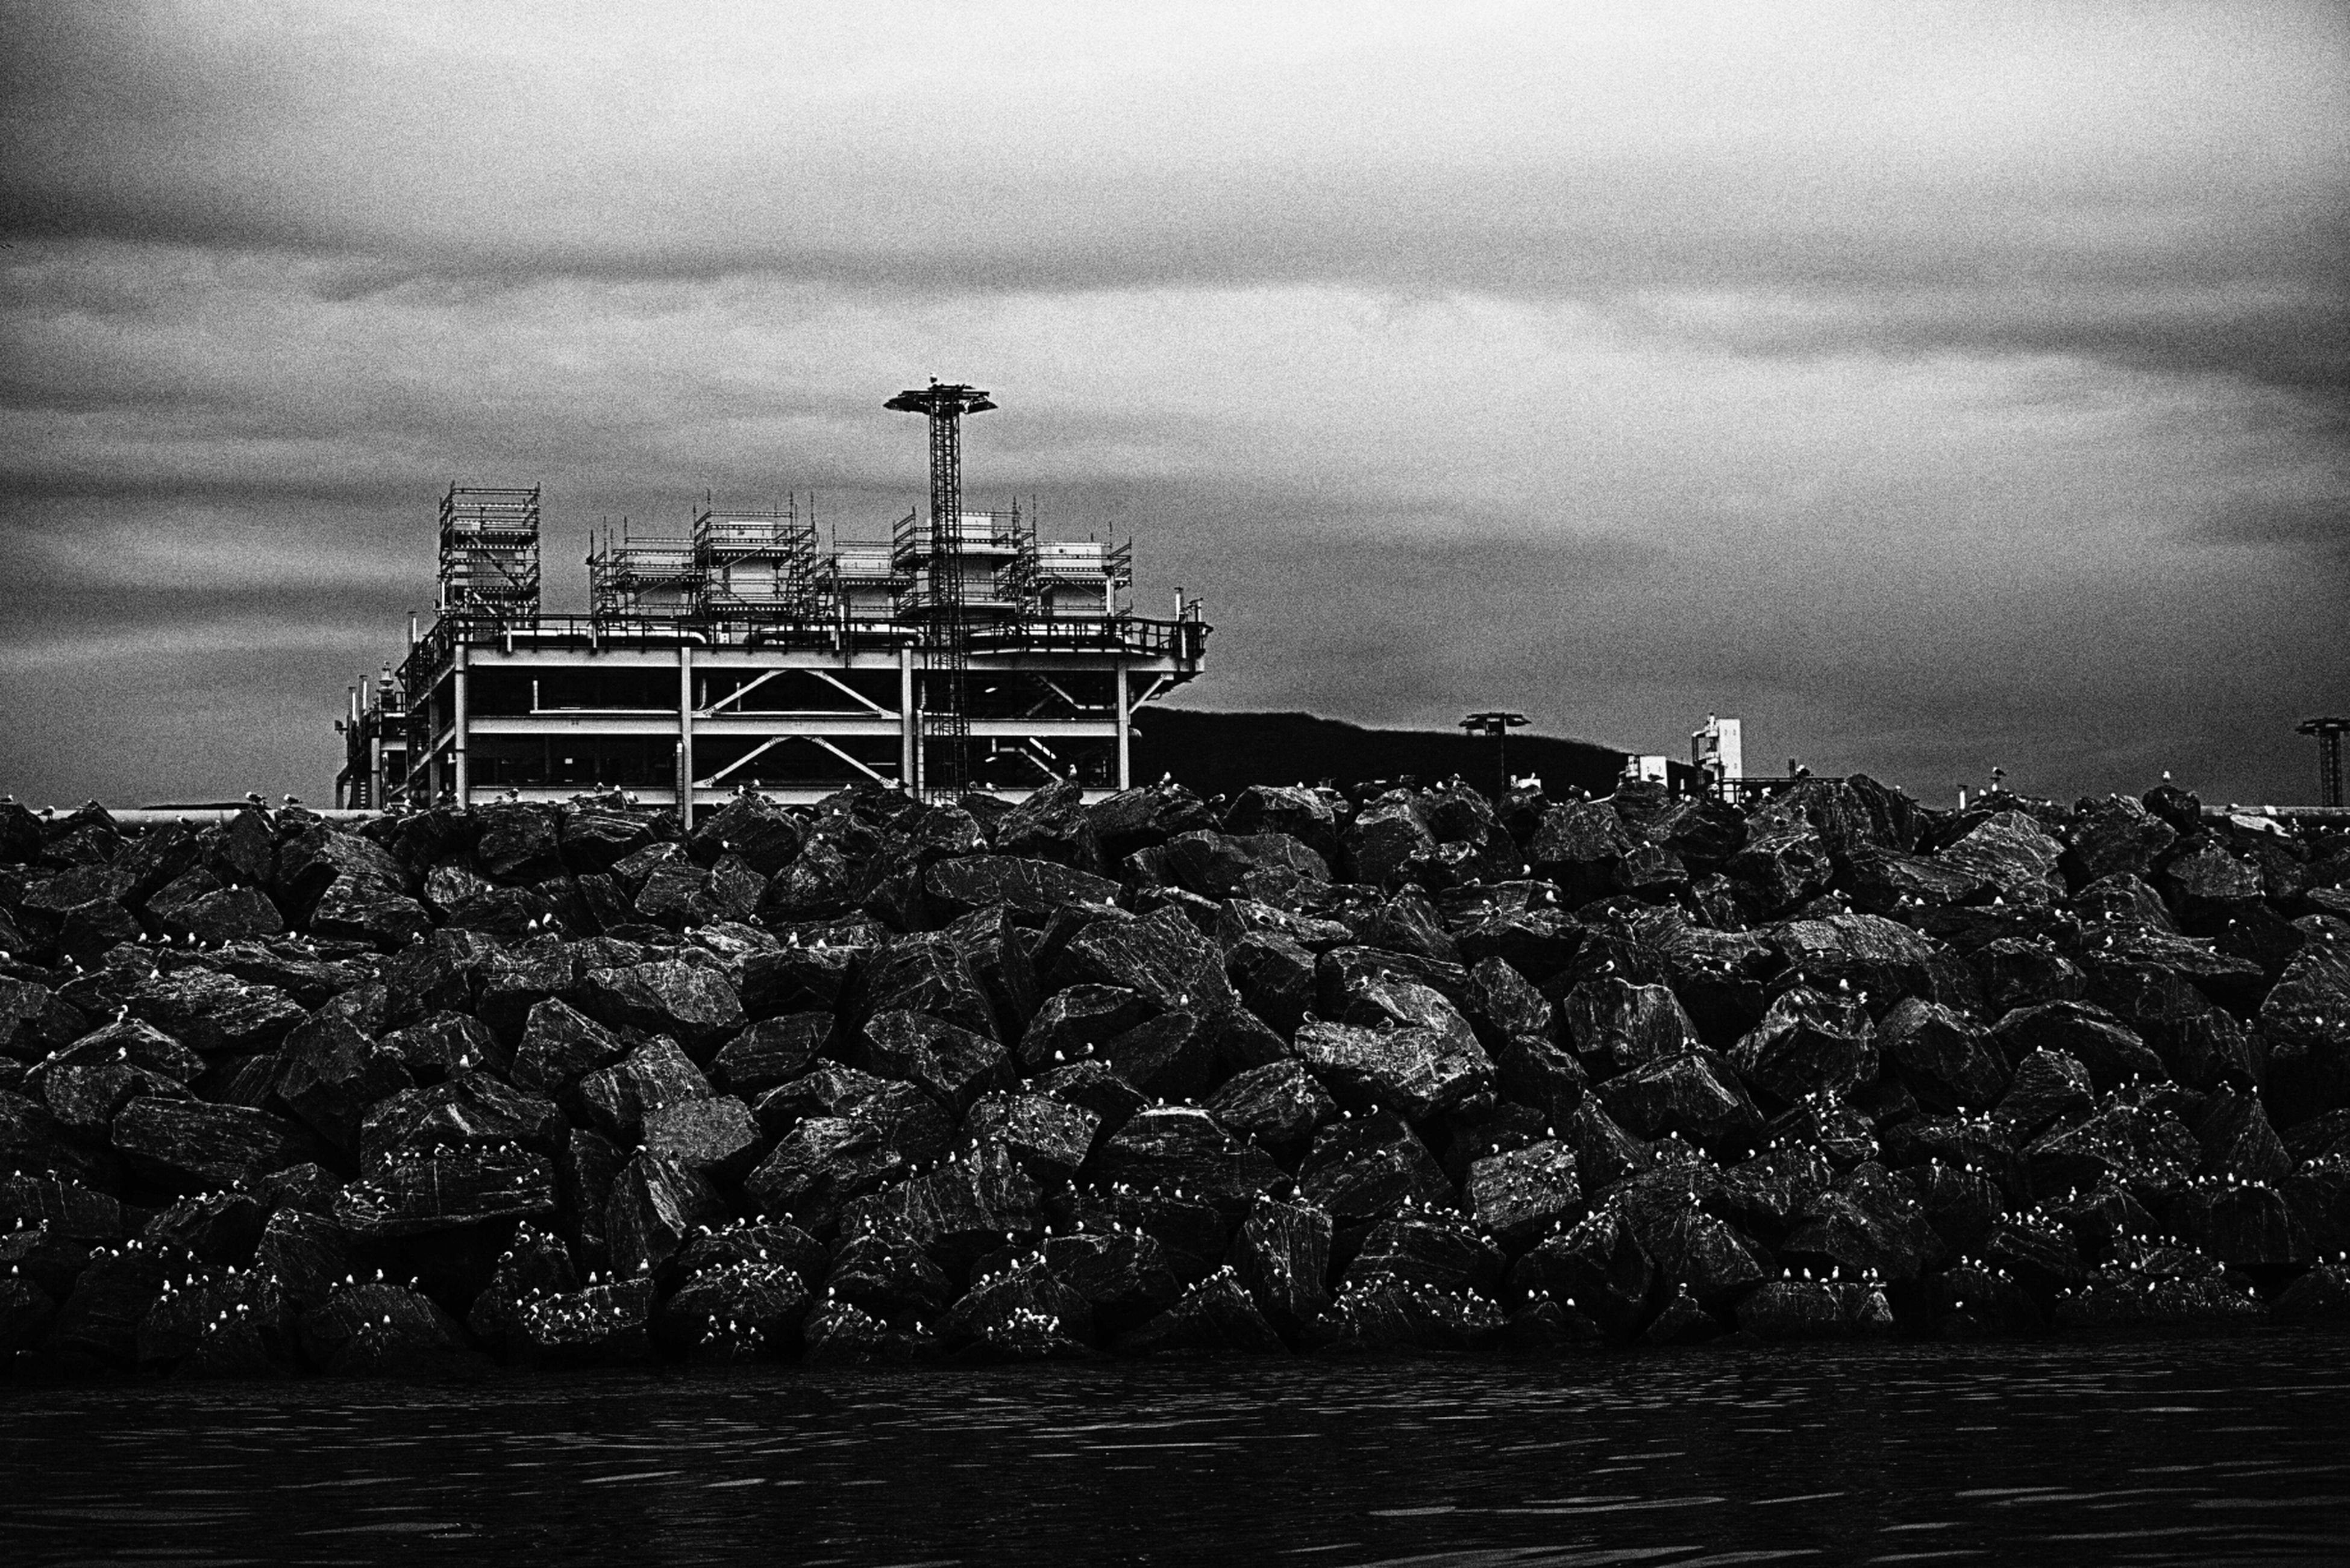 sky, water, built structure, building exterior, cloud - sky, architecture, weather, cloudy, overcast, waterfront, nature, no people, sea, outdoors, day, dusk, cloud, industry, river, lake